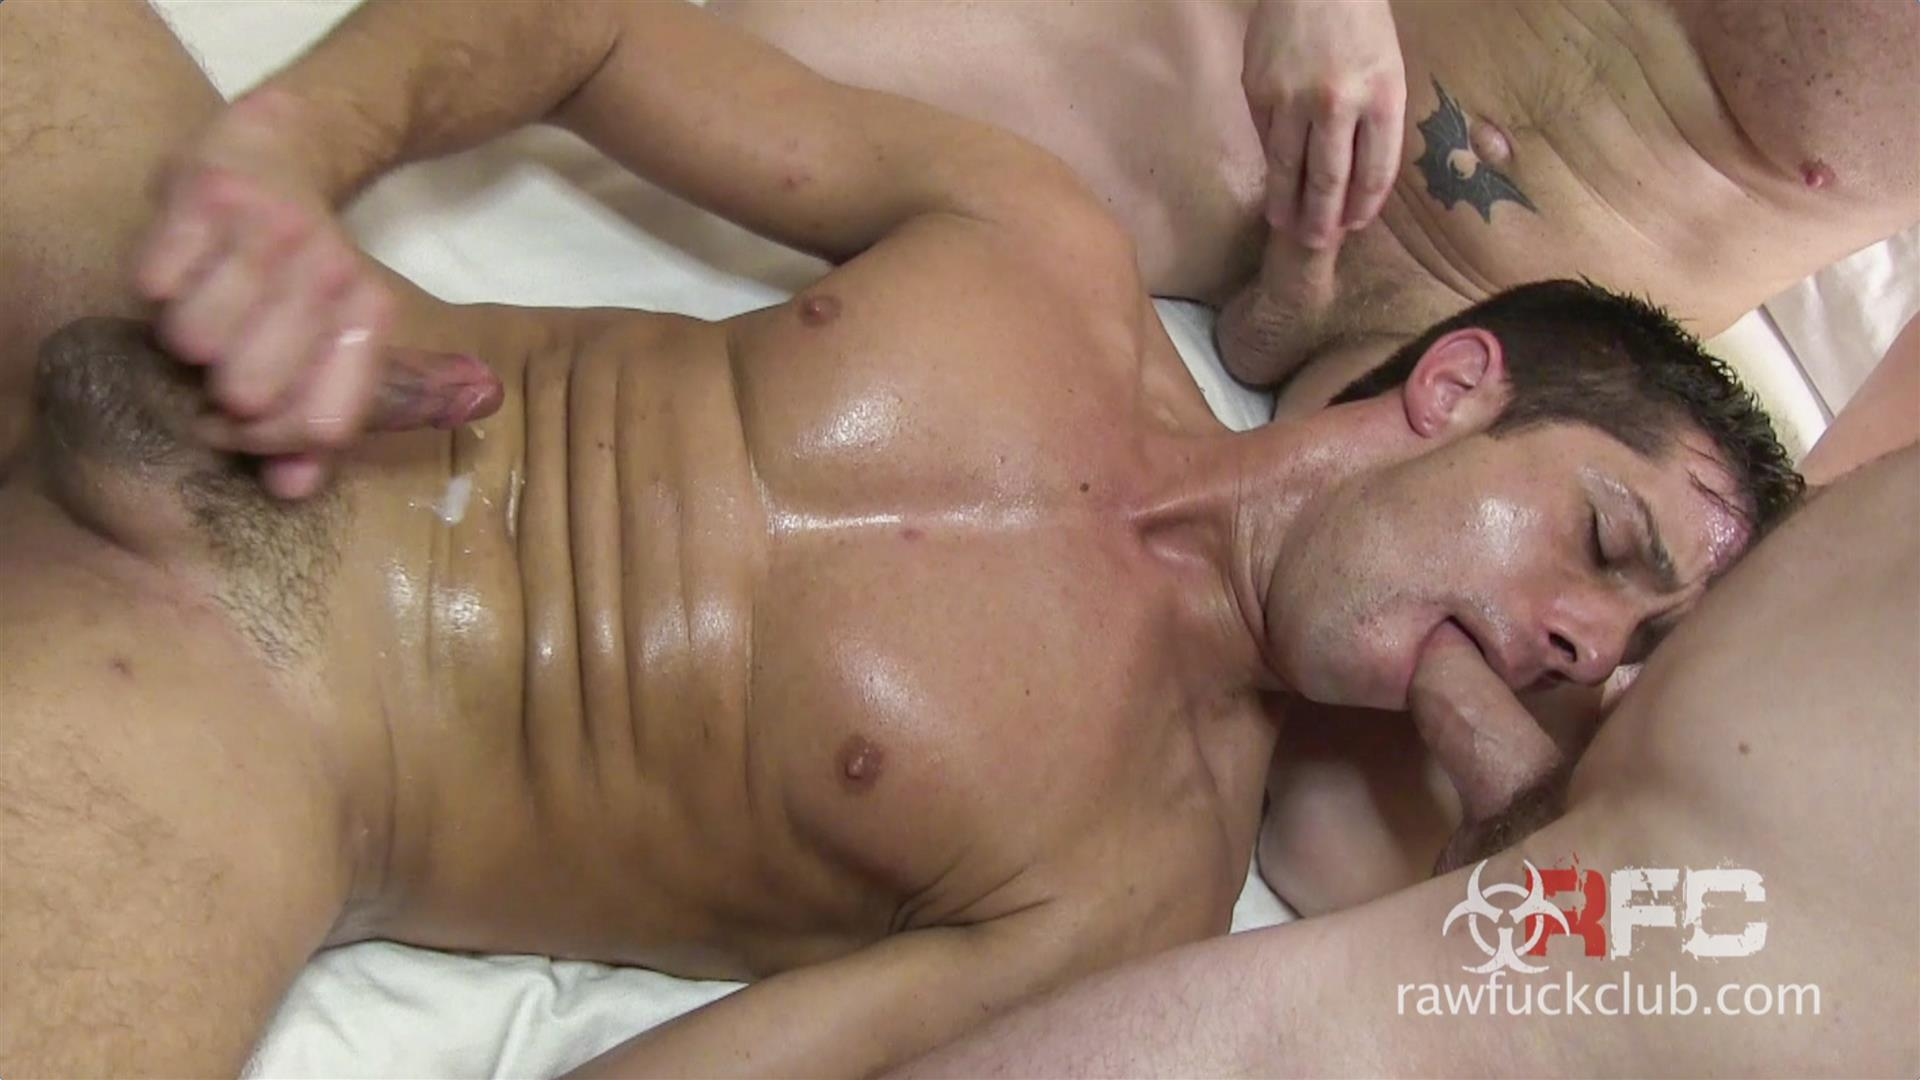 Raw-Fuck-Club-Dylan-Saunders-and-Dusty-Williams-and-Jeff-Kendall-and-Jeremy-Stevens-BBBH-Amateur-Gay-Porn-08 Big Cock Amateur Hotel Bareback Sex Party